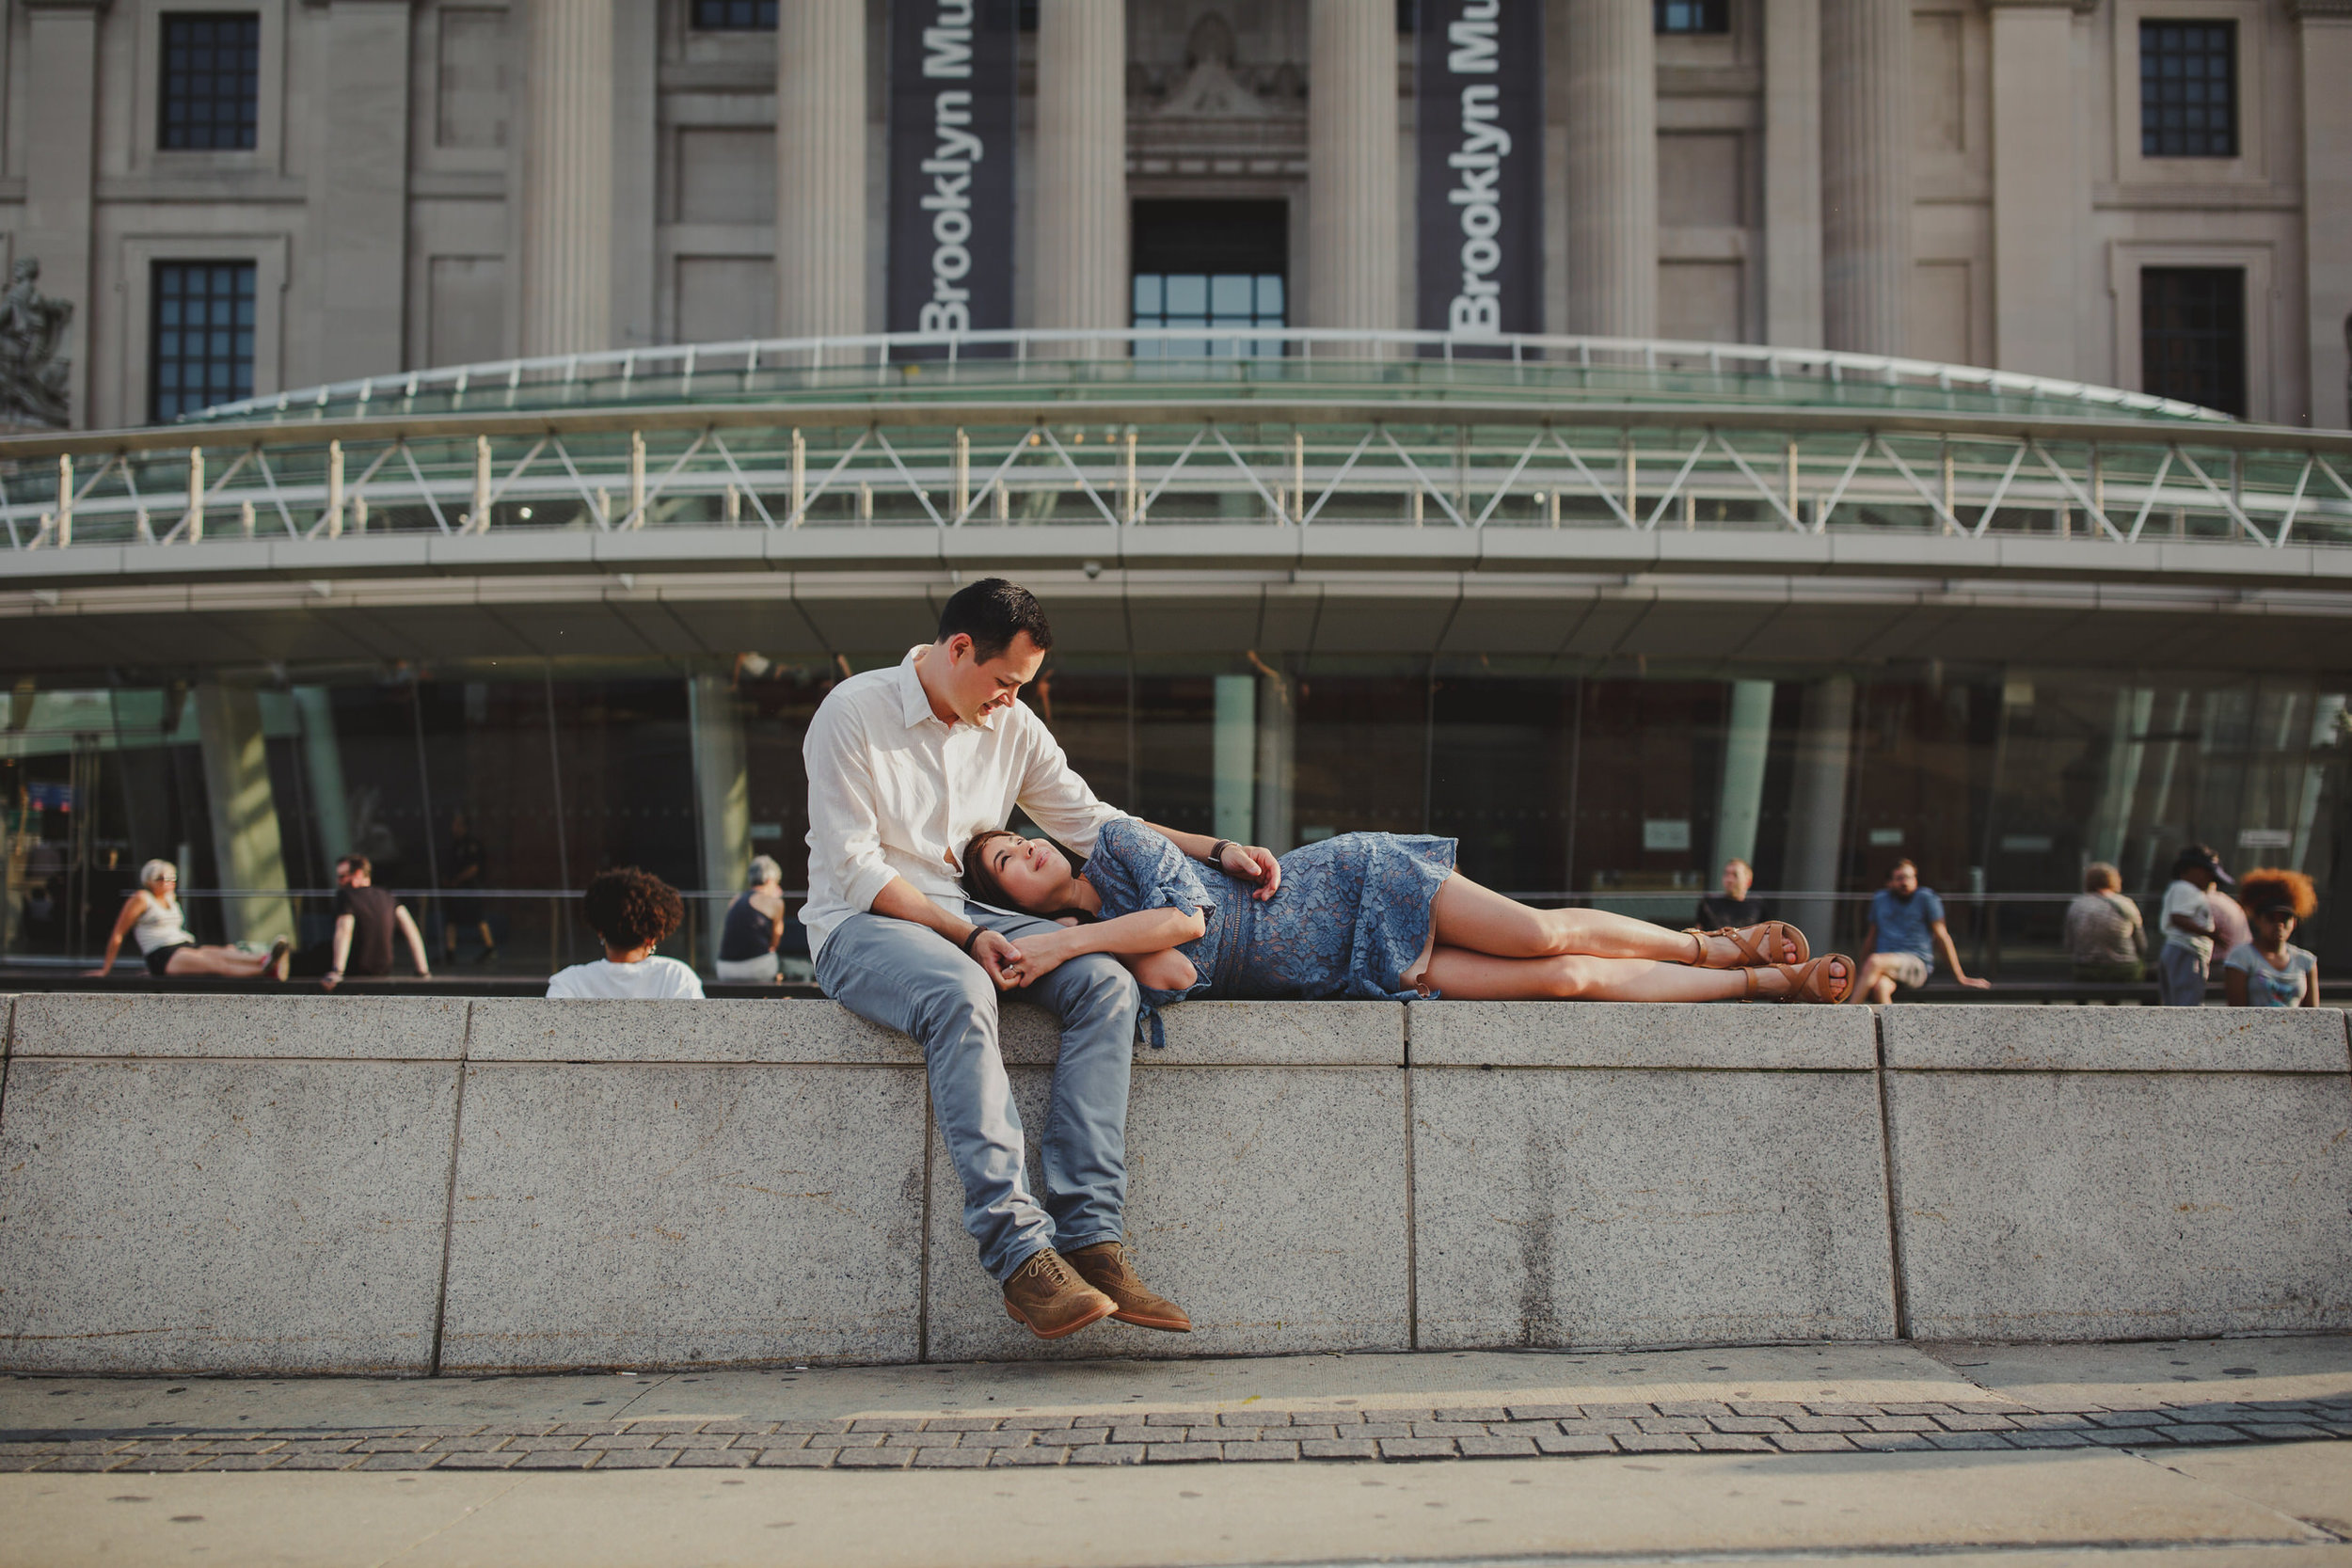 brooklyn_museum_engagement_session_nyc_love_artists_couples_tiny_house_photo.jpg